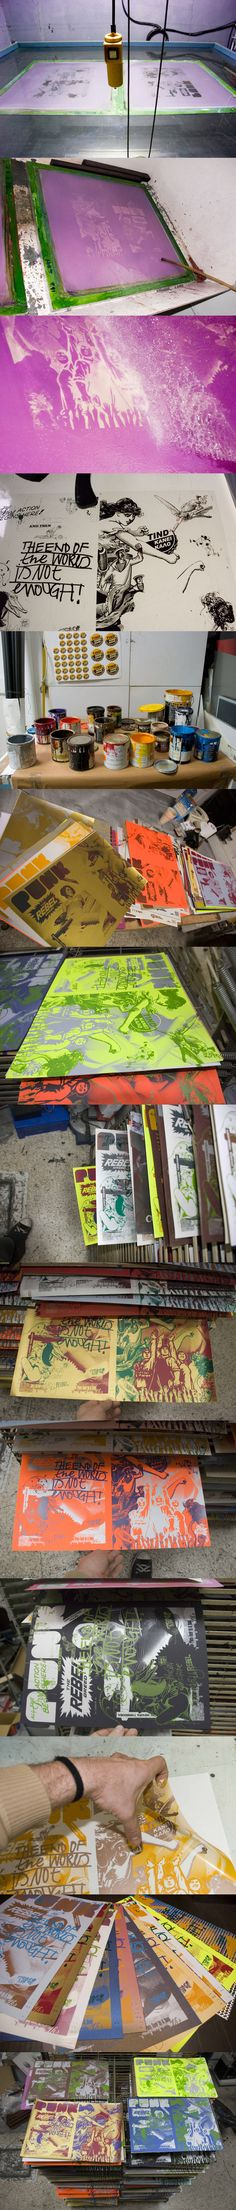 Beautiful compilation of images from a print job. #screenprinting